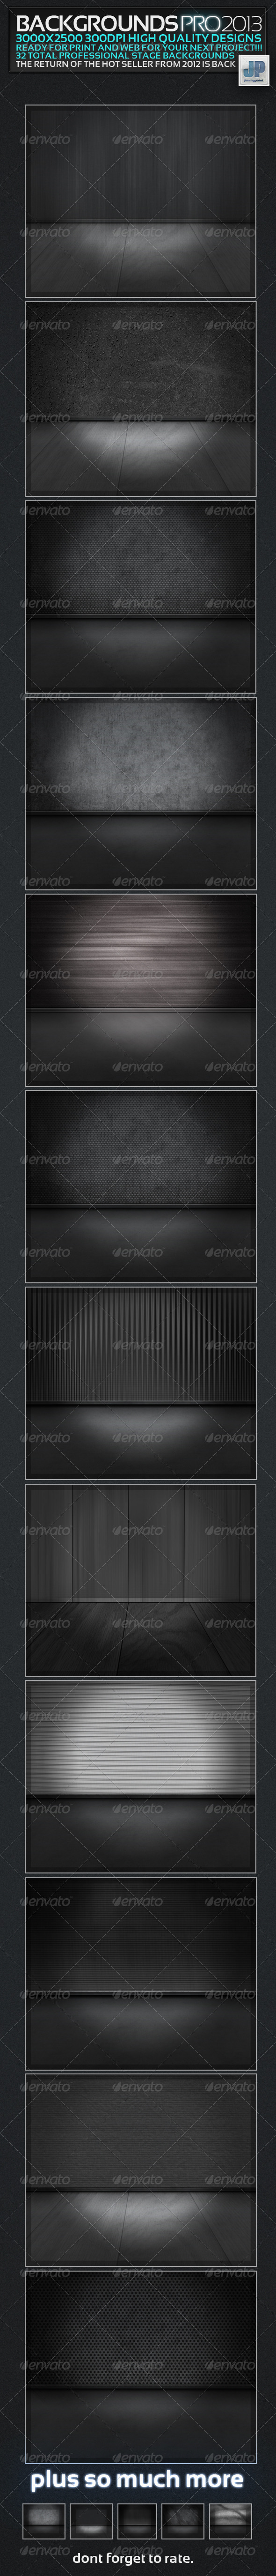 Backgrounds Pro 2013 - Miscellaneous Backgrounds